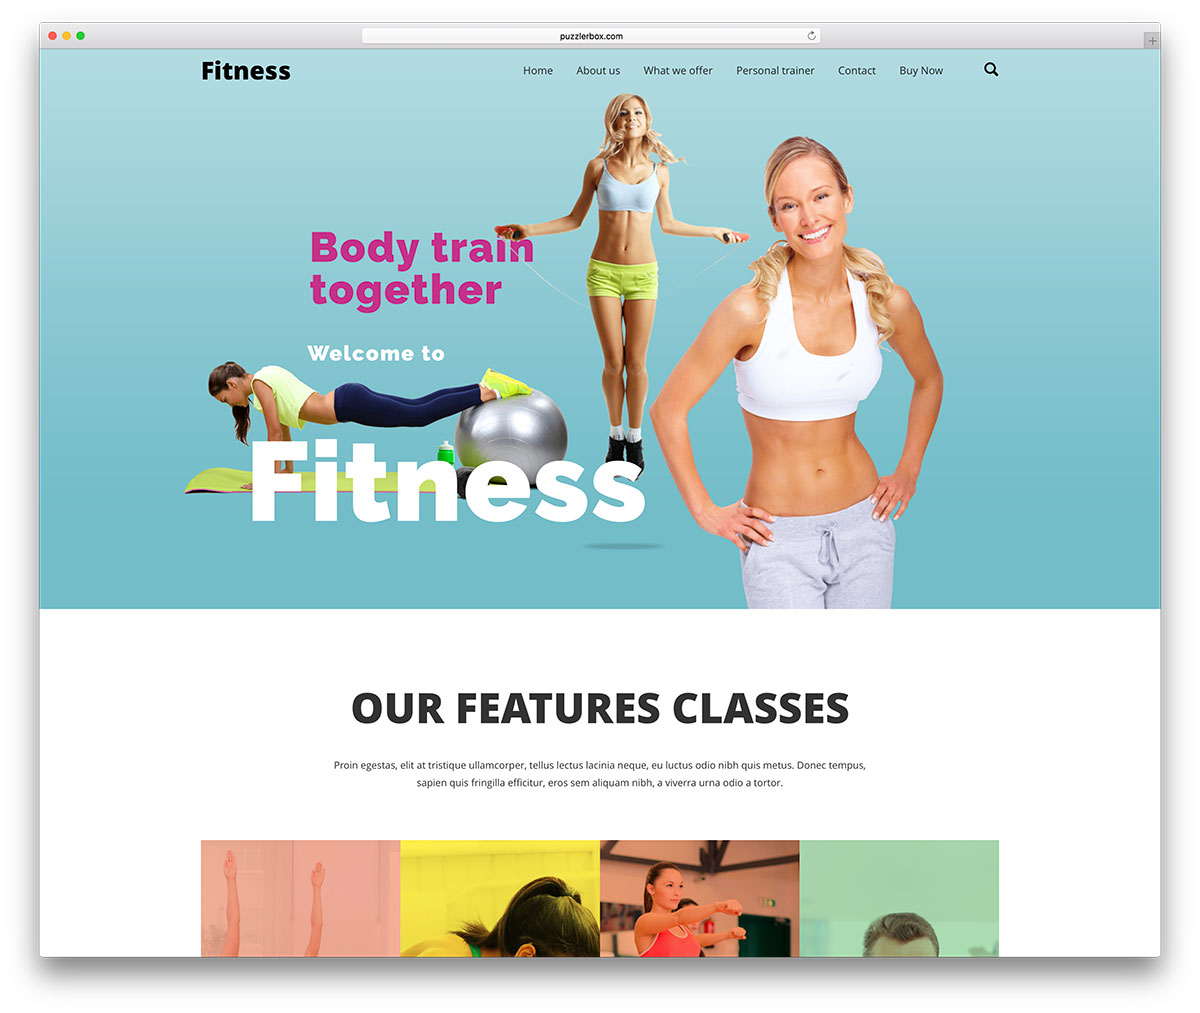 20 best wordpress fitness themes 2018 for gym and fitness centers levelup is a fresh and responsive wordpress creative multipurpose website theme levelup is a simple but powerful website building toolkit xflitez Image collections